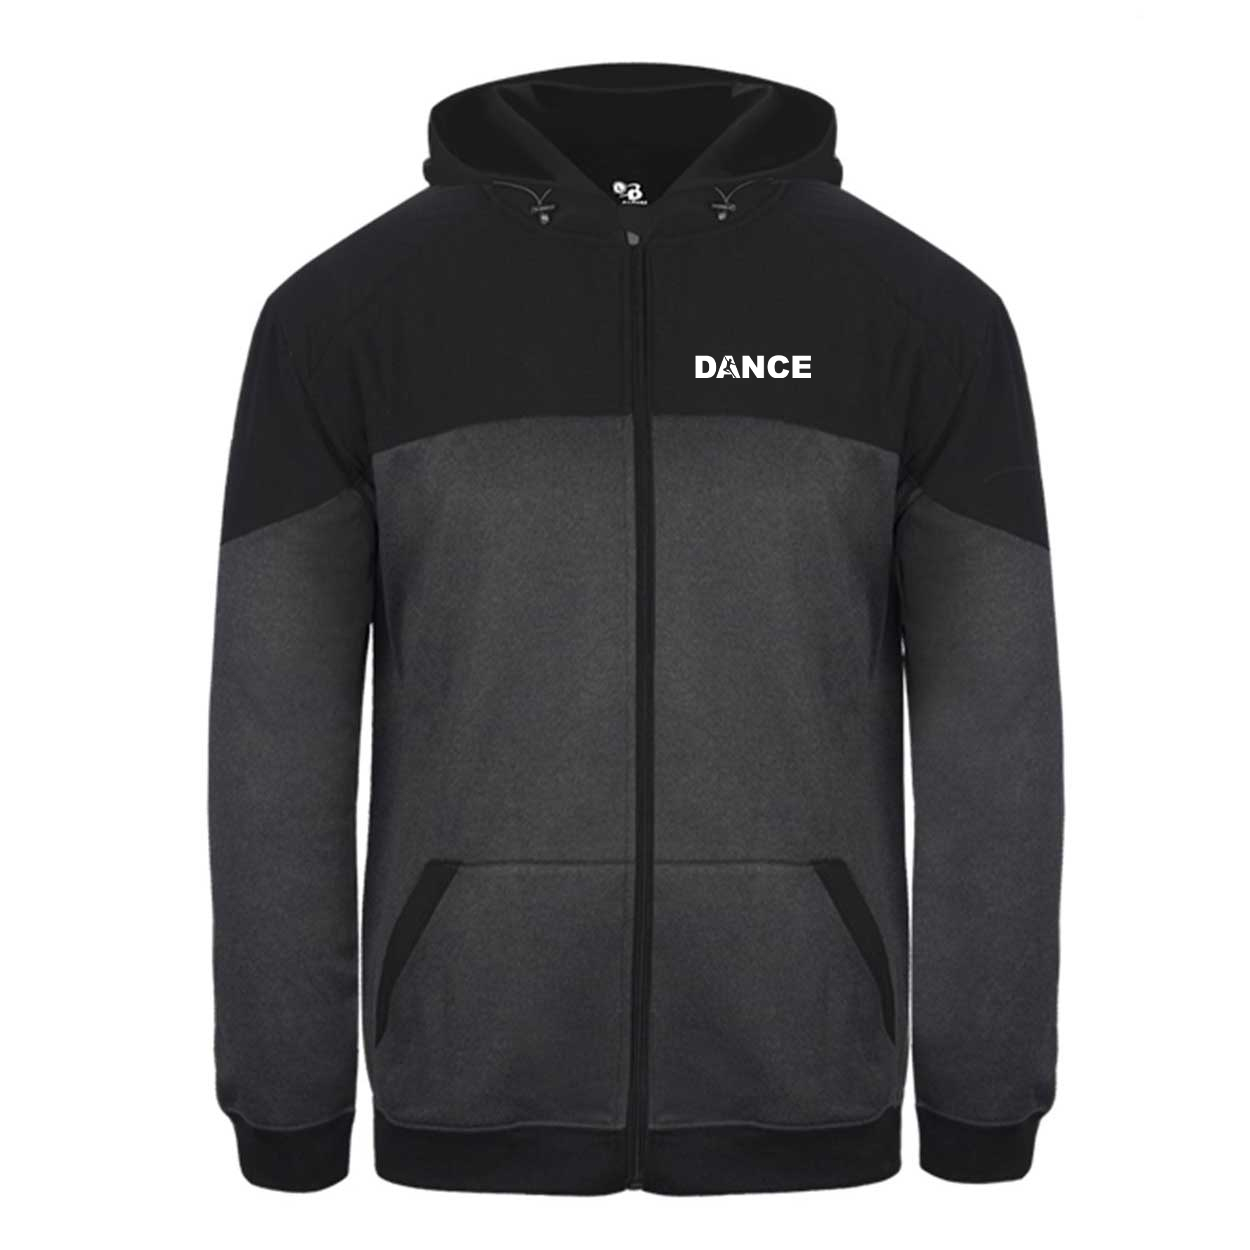 Dance Silhouette Logo Classic Vindicator Jacket Carbon Heather/Black (White Logo)